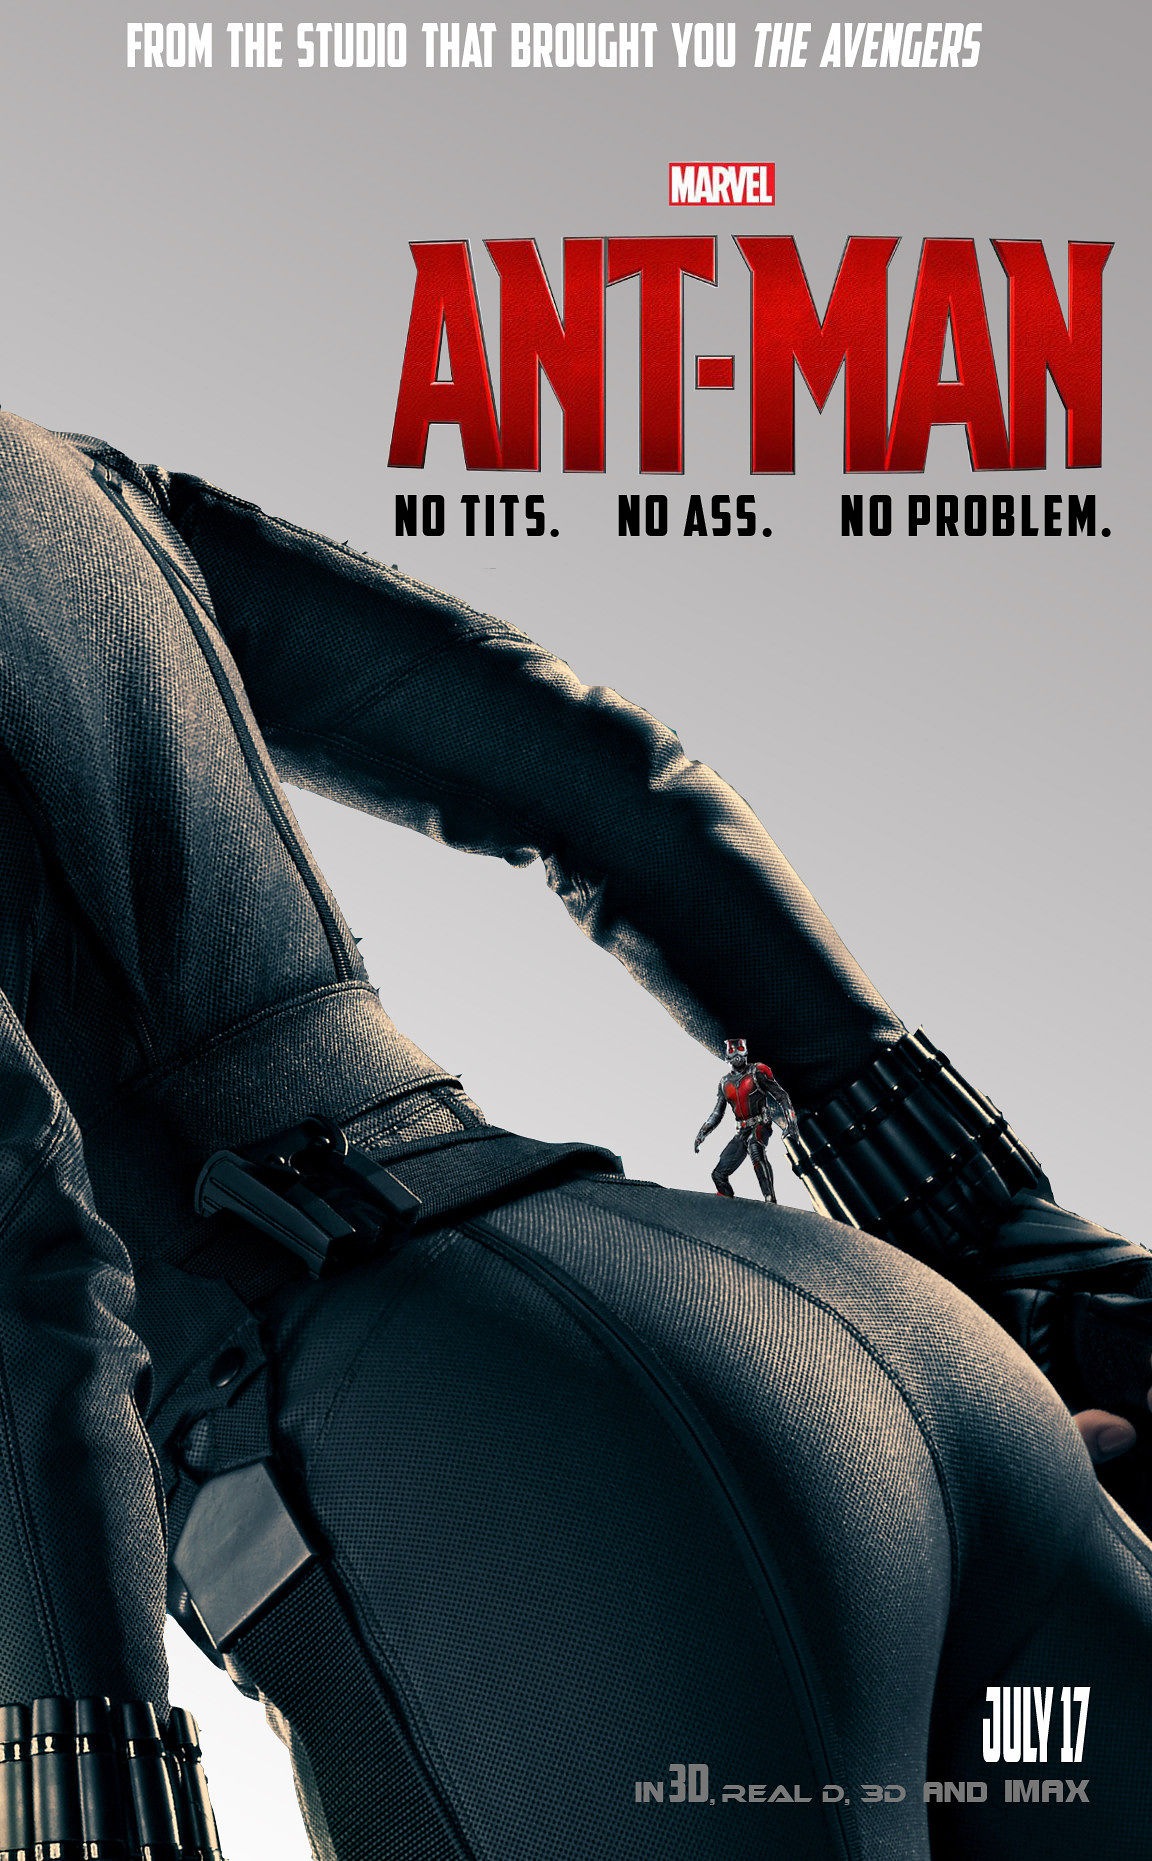 these-ant-man-parody-posters-are-literally-just-as-good-as-the-official-releases-456476